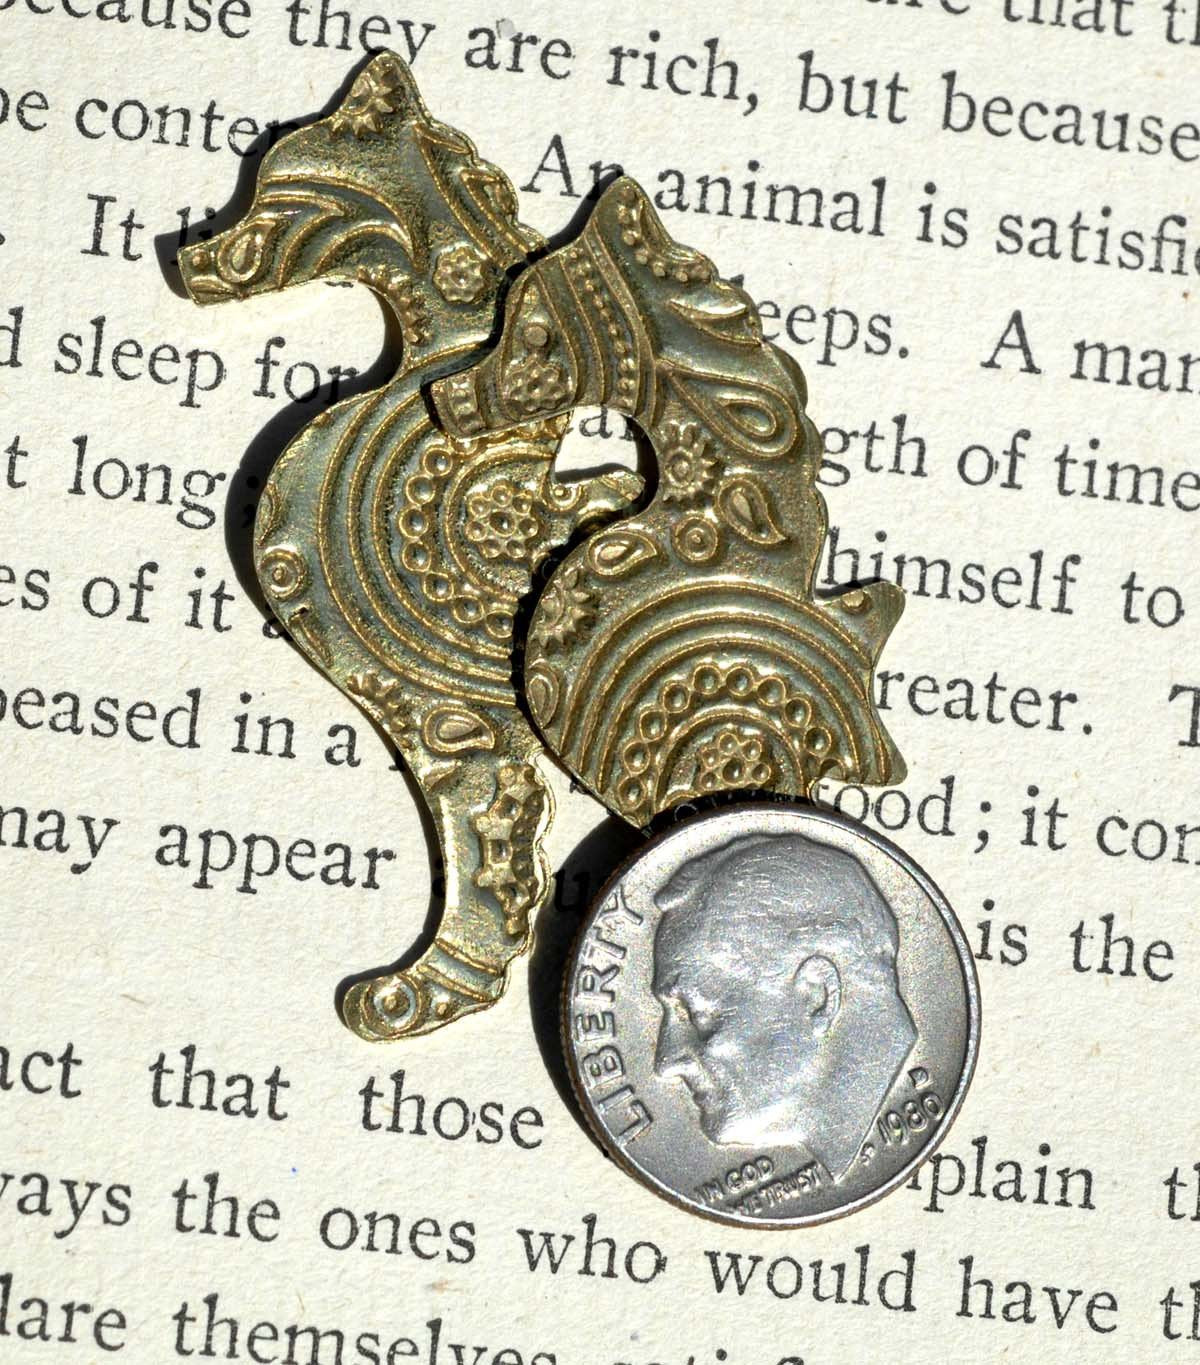 Seahorse Shape, Paisley 24g Textured Blanks Metalworking Stamping Texturing Jewelry Making Blank Variety of Metals,